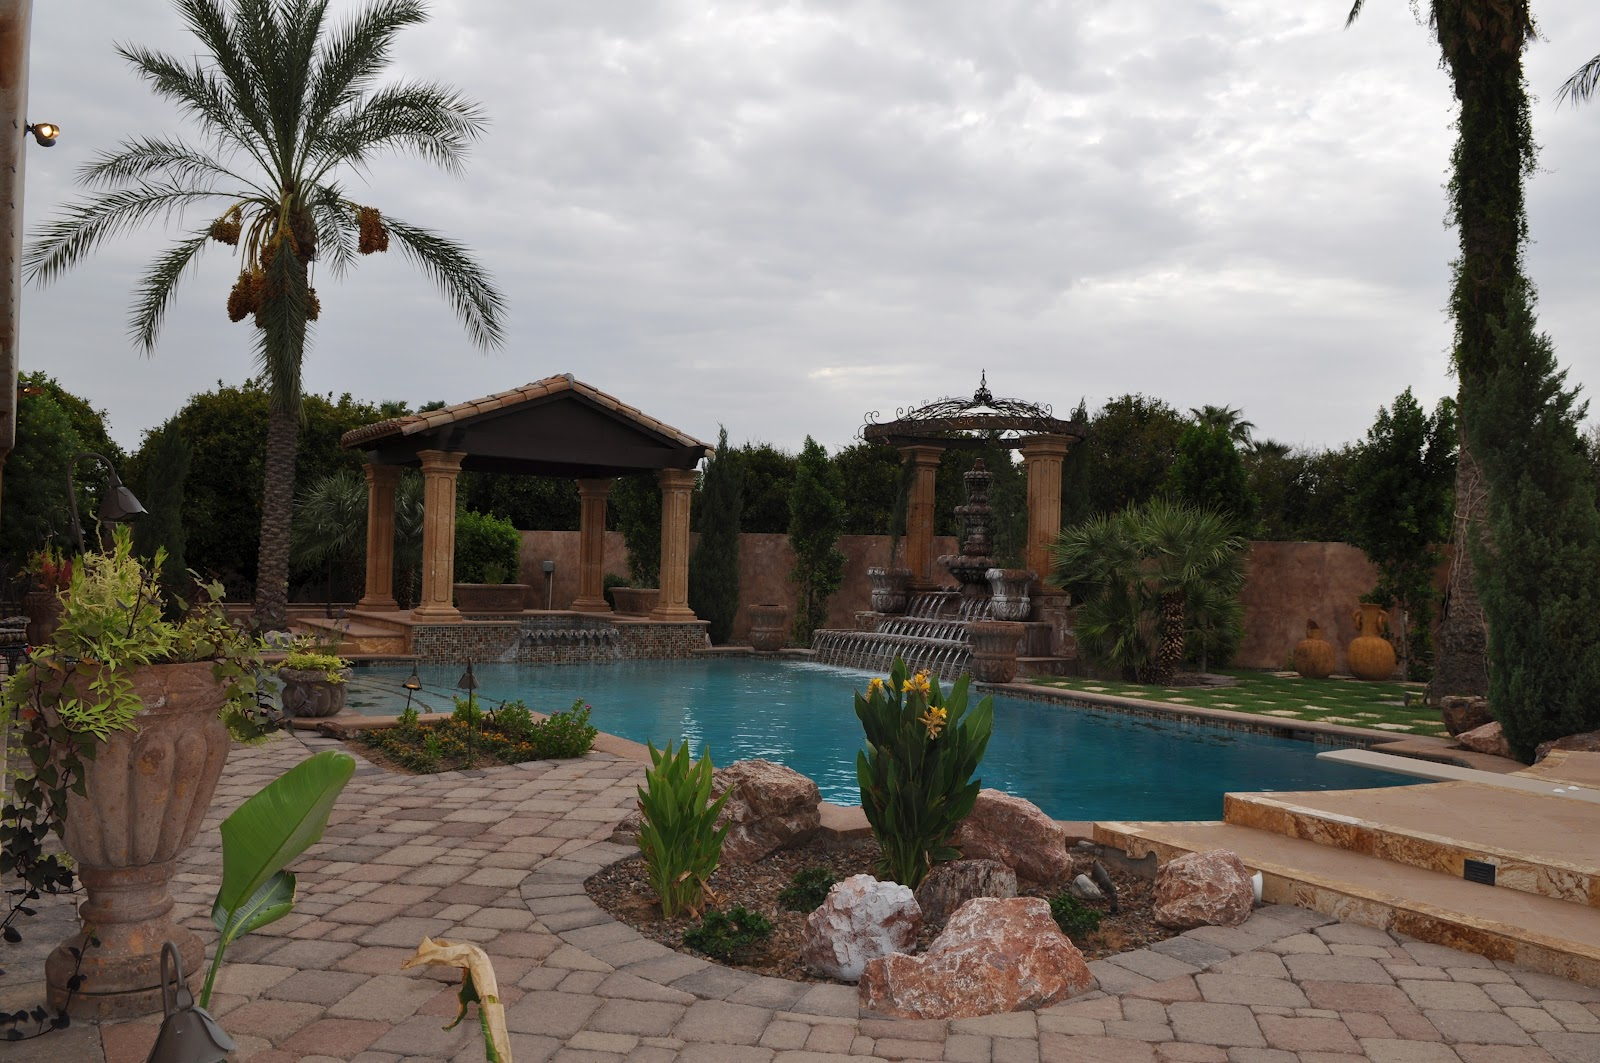 Rent an ultra luxury home in mesa az for baseball spring for Pool fill in mesa az